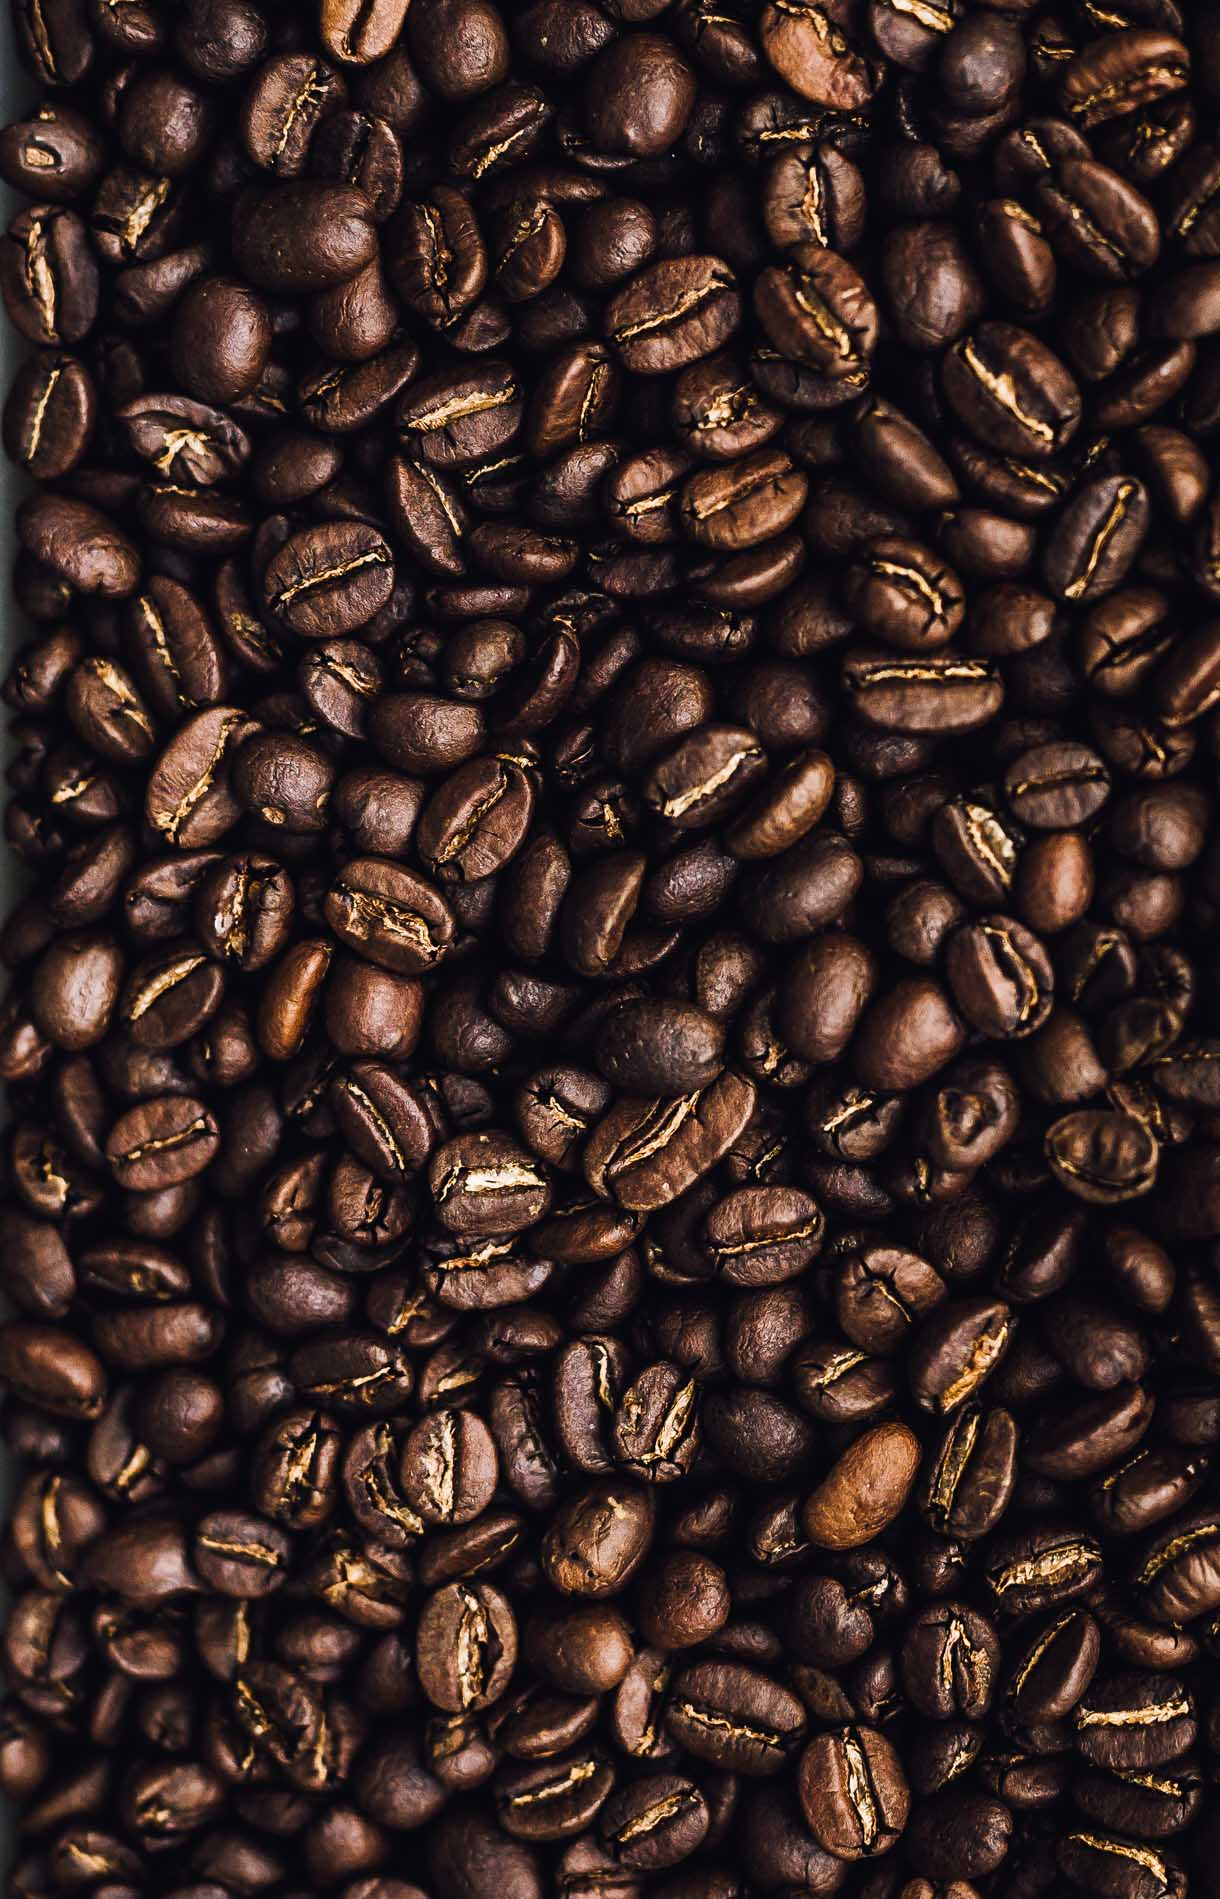 Fresh Roasted Coffee Beans from the Congo